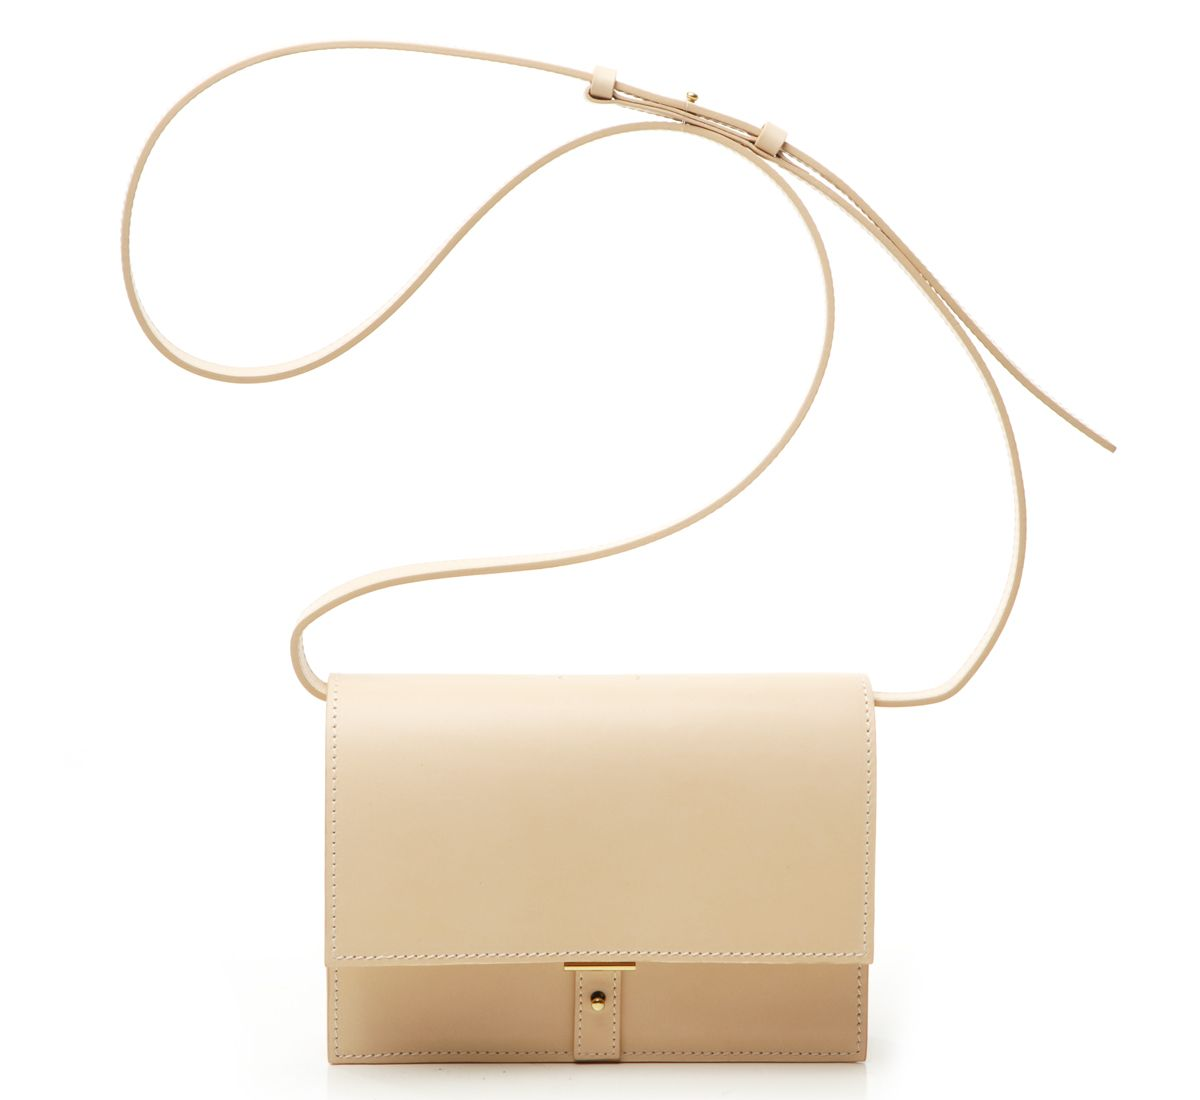 cec0fb9478f AB10 natural shoulder bag by PB 0110   What else    Bags, of course ...